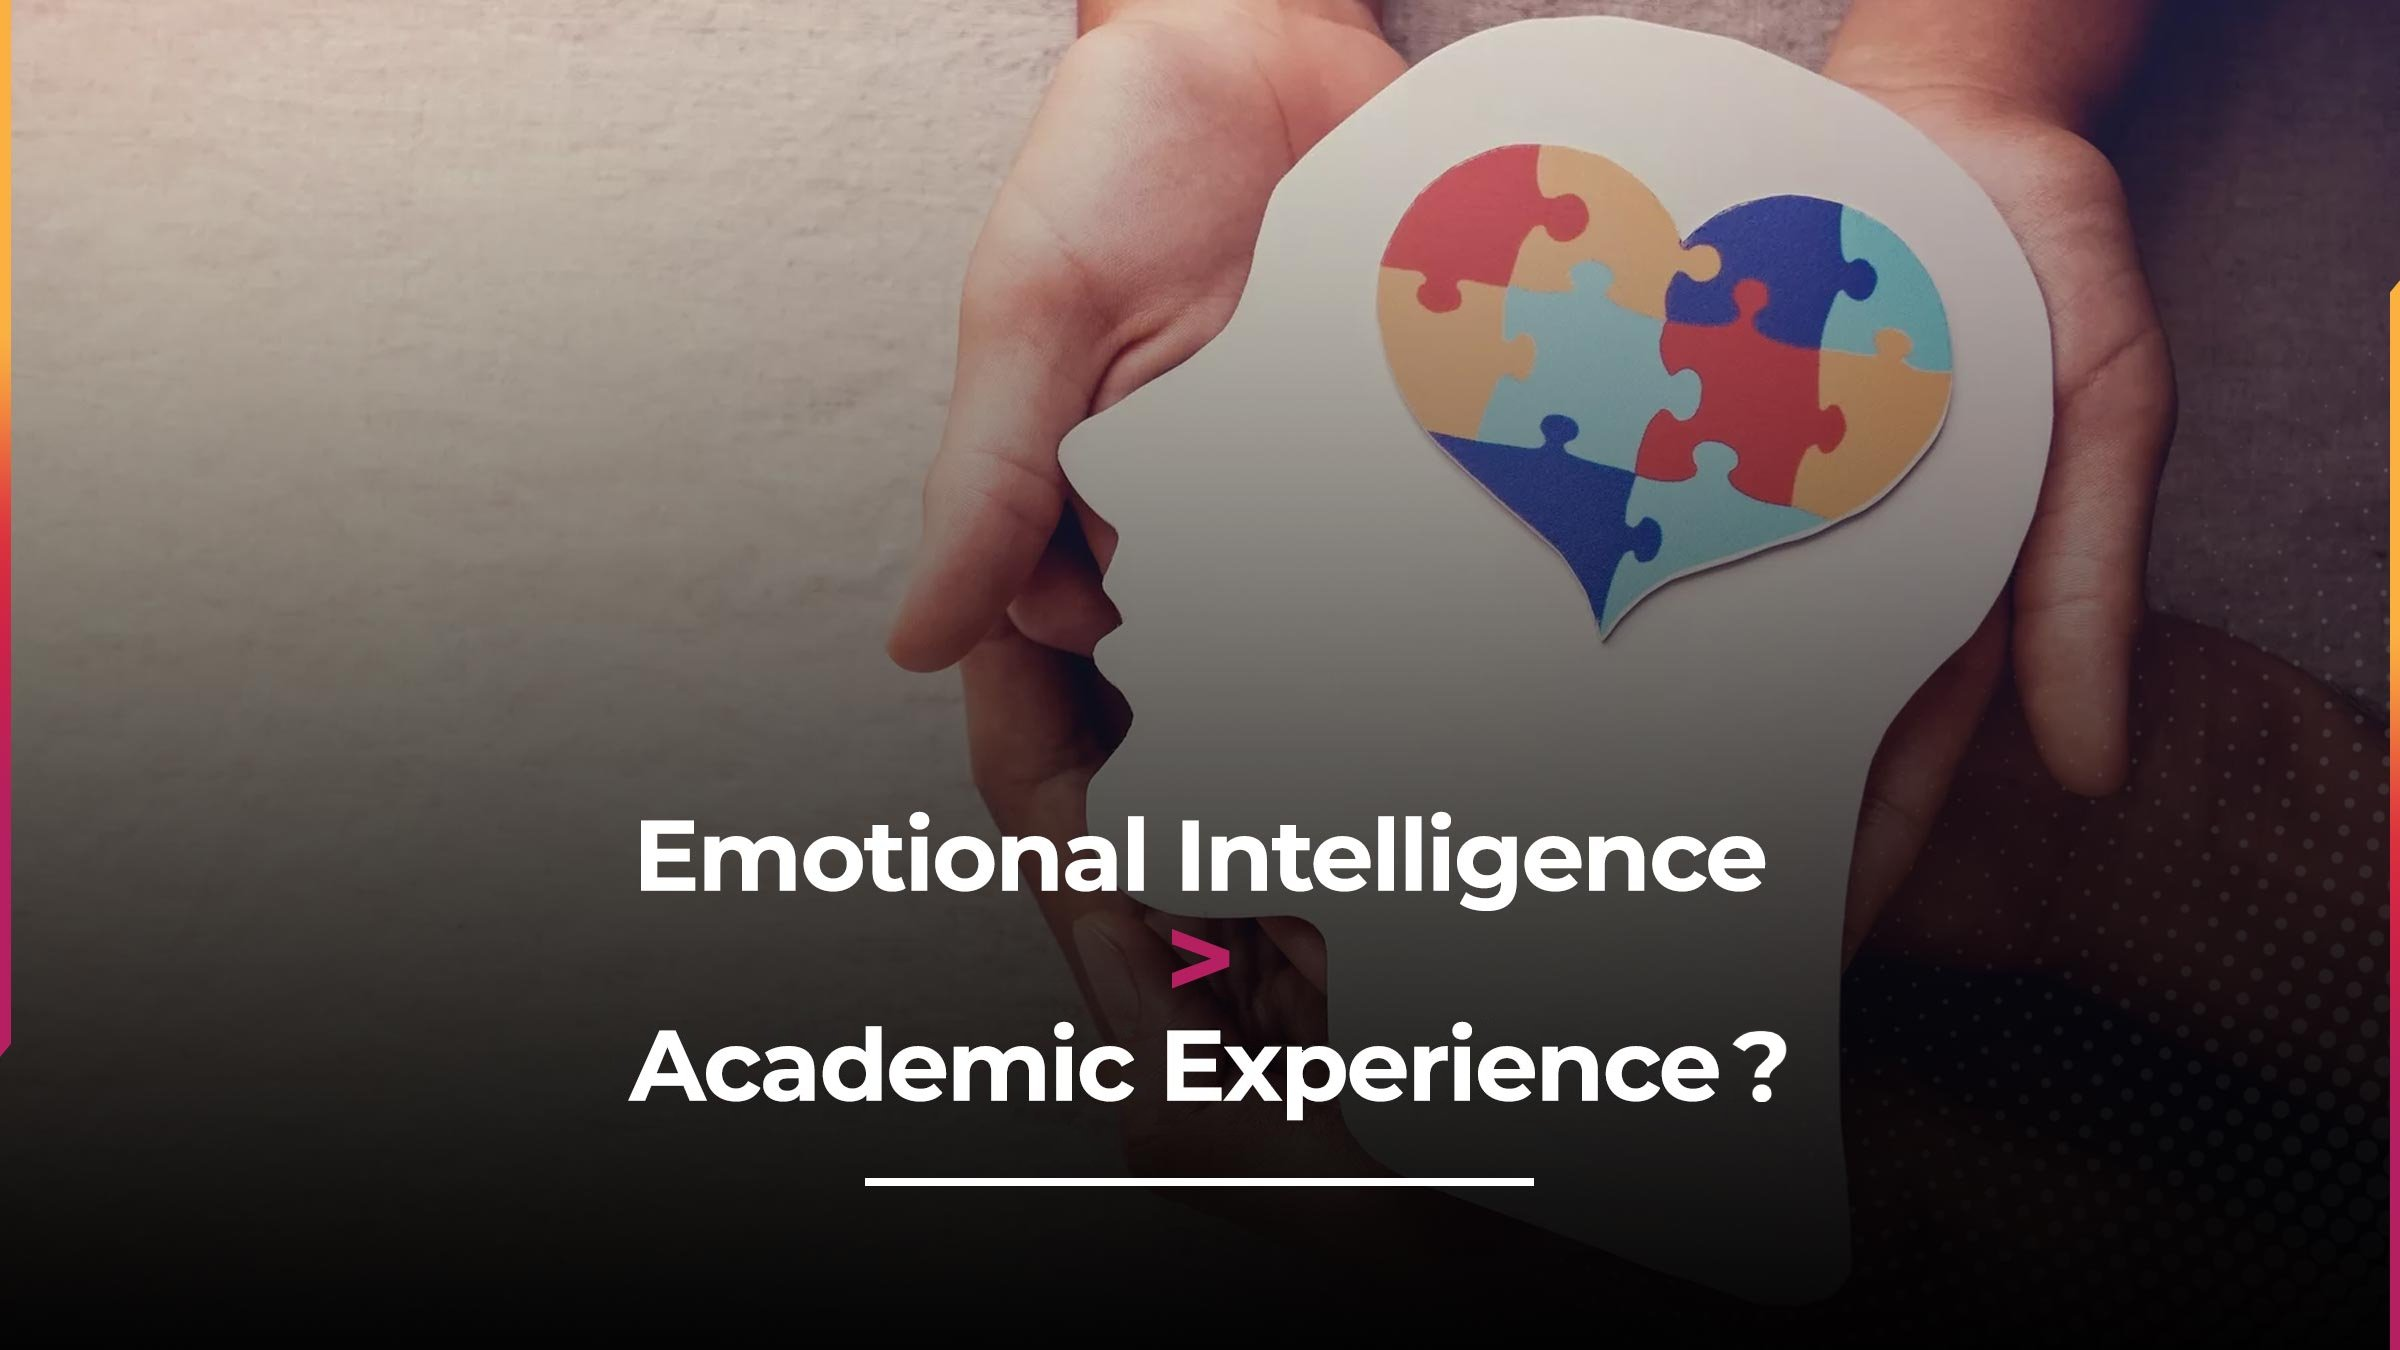 Why Emotional Intelligence Is Just As Important As Academic Experience